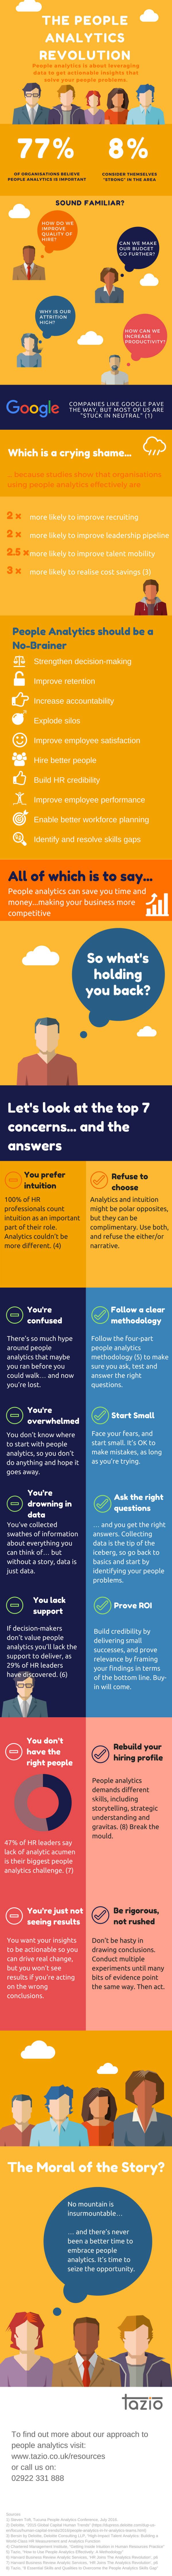 The People Analytics Revolution - Infographic